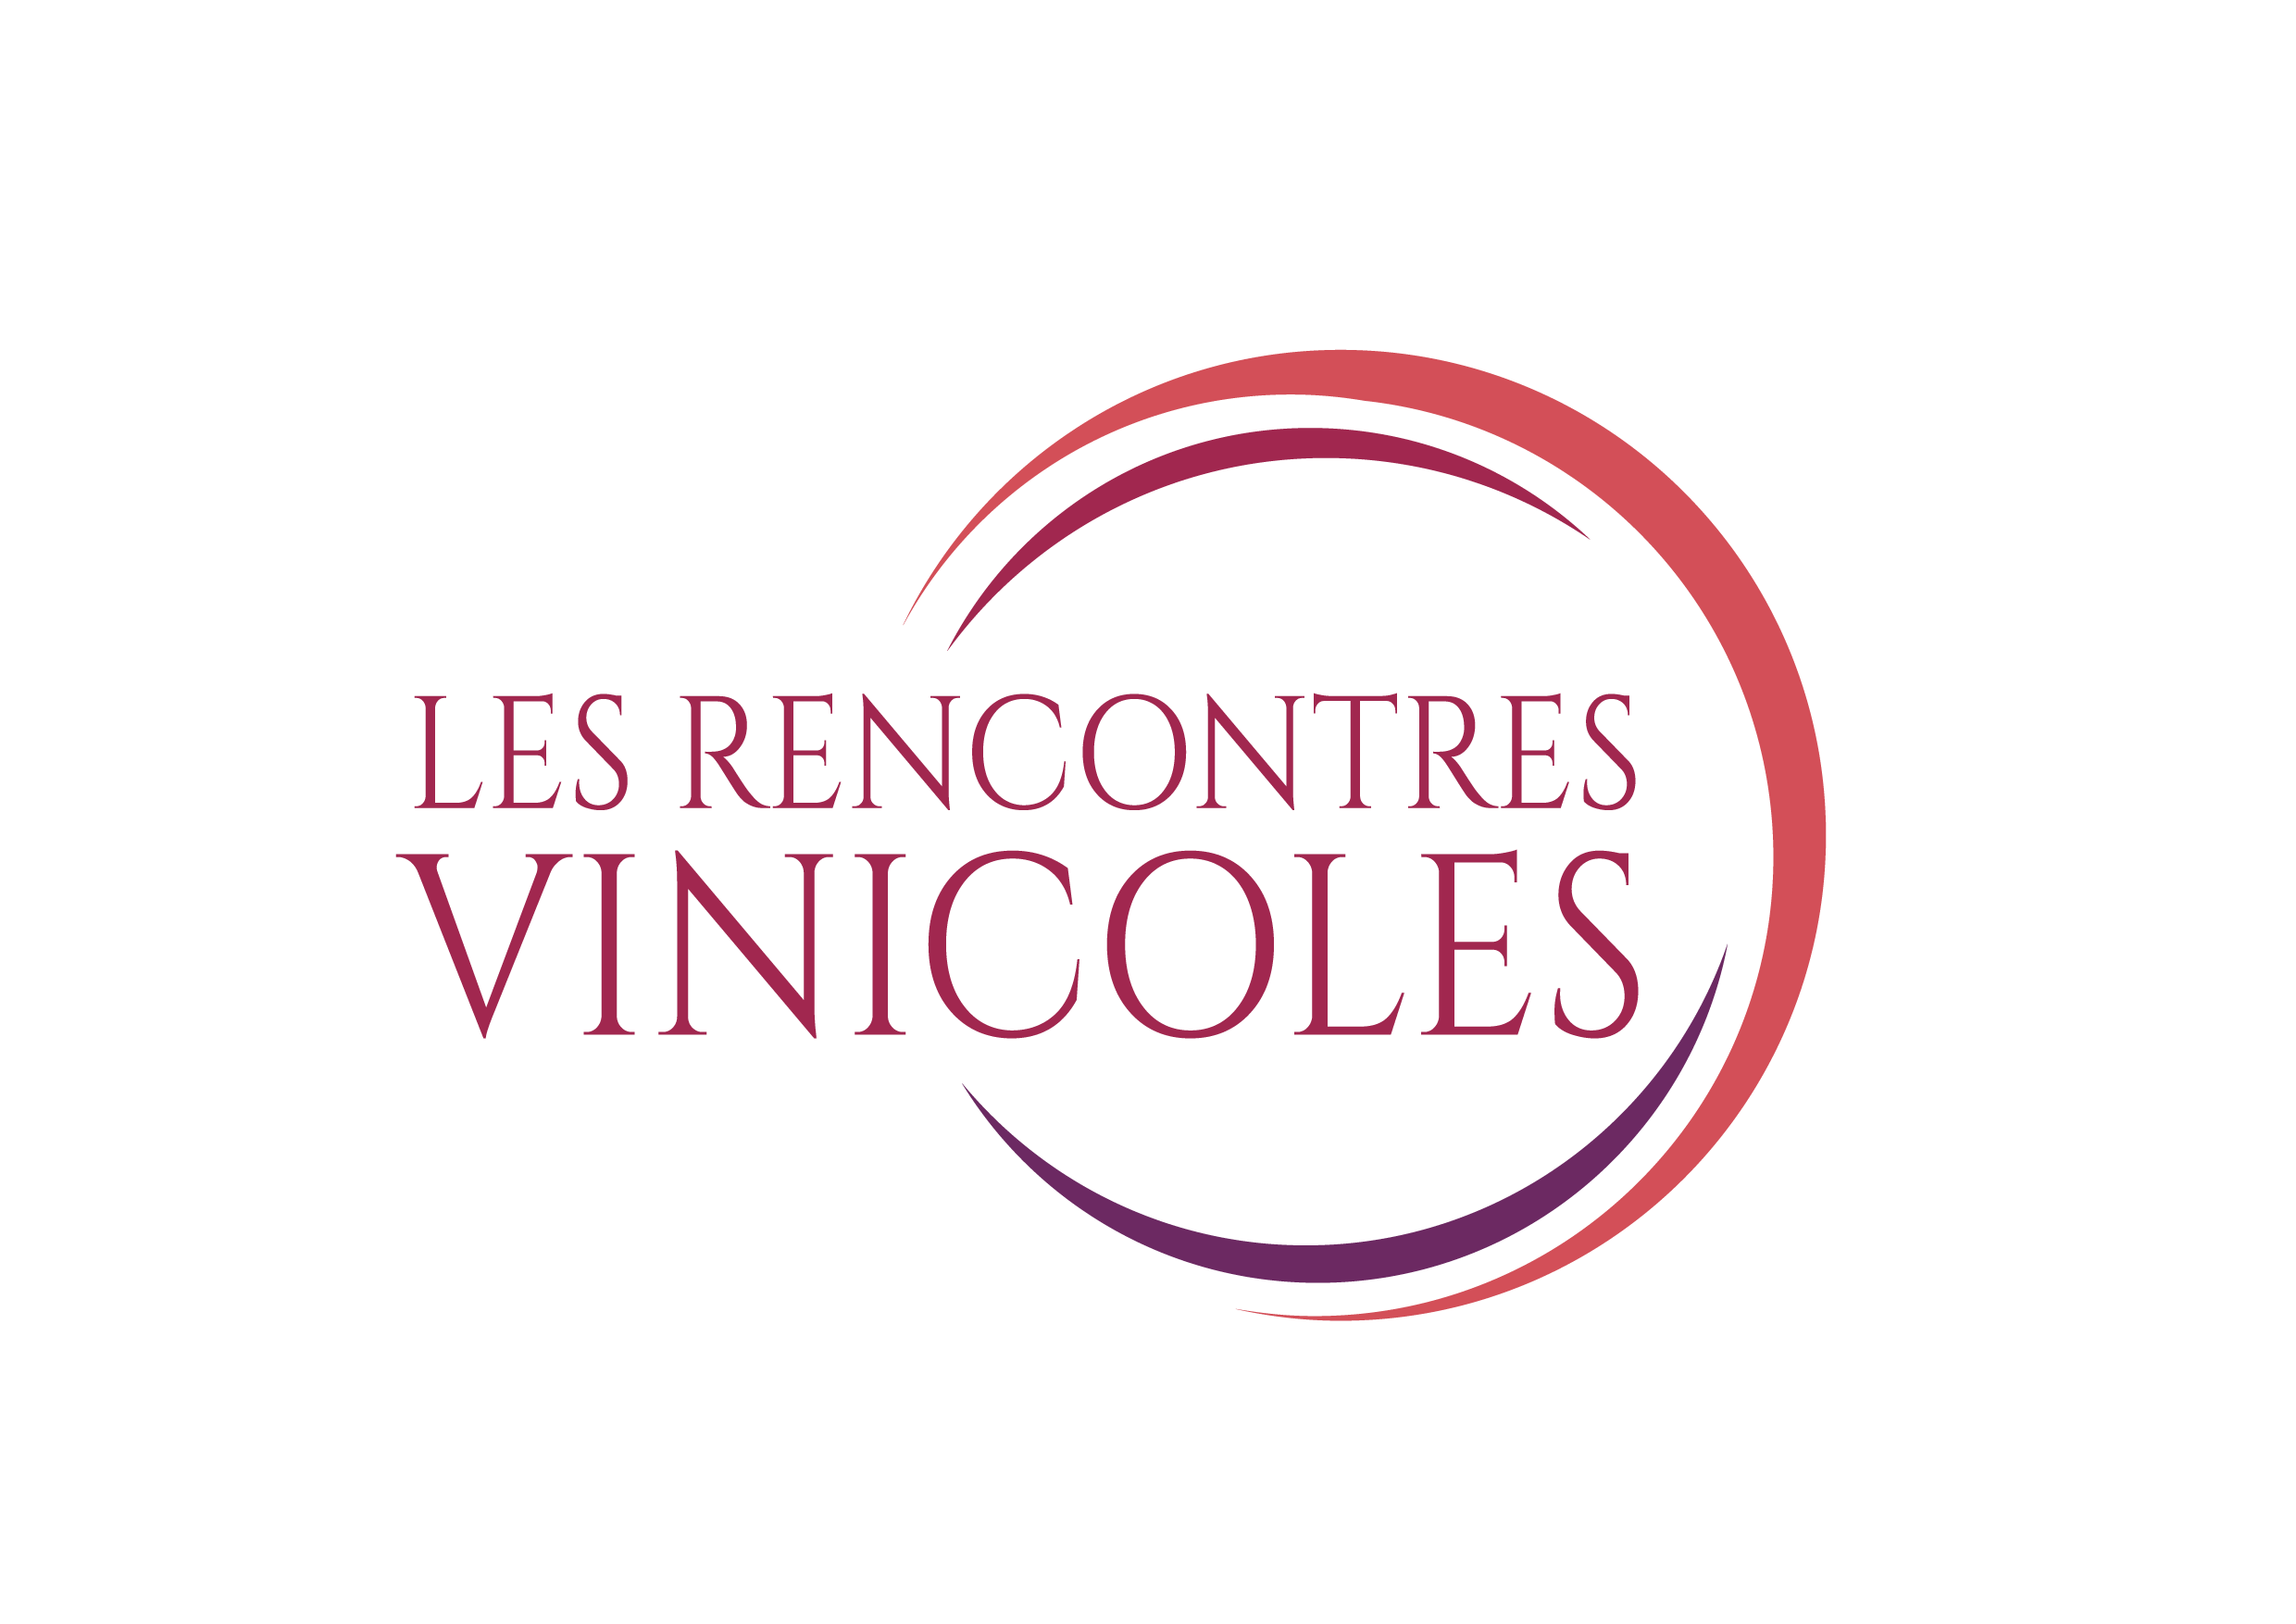 Site de rencontres paris